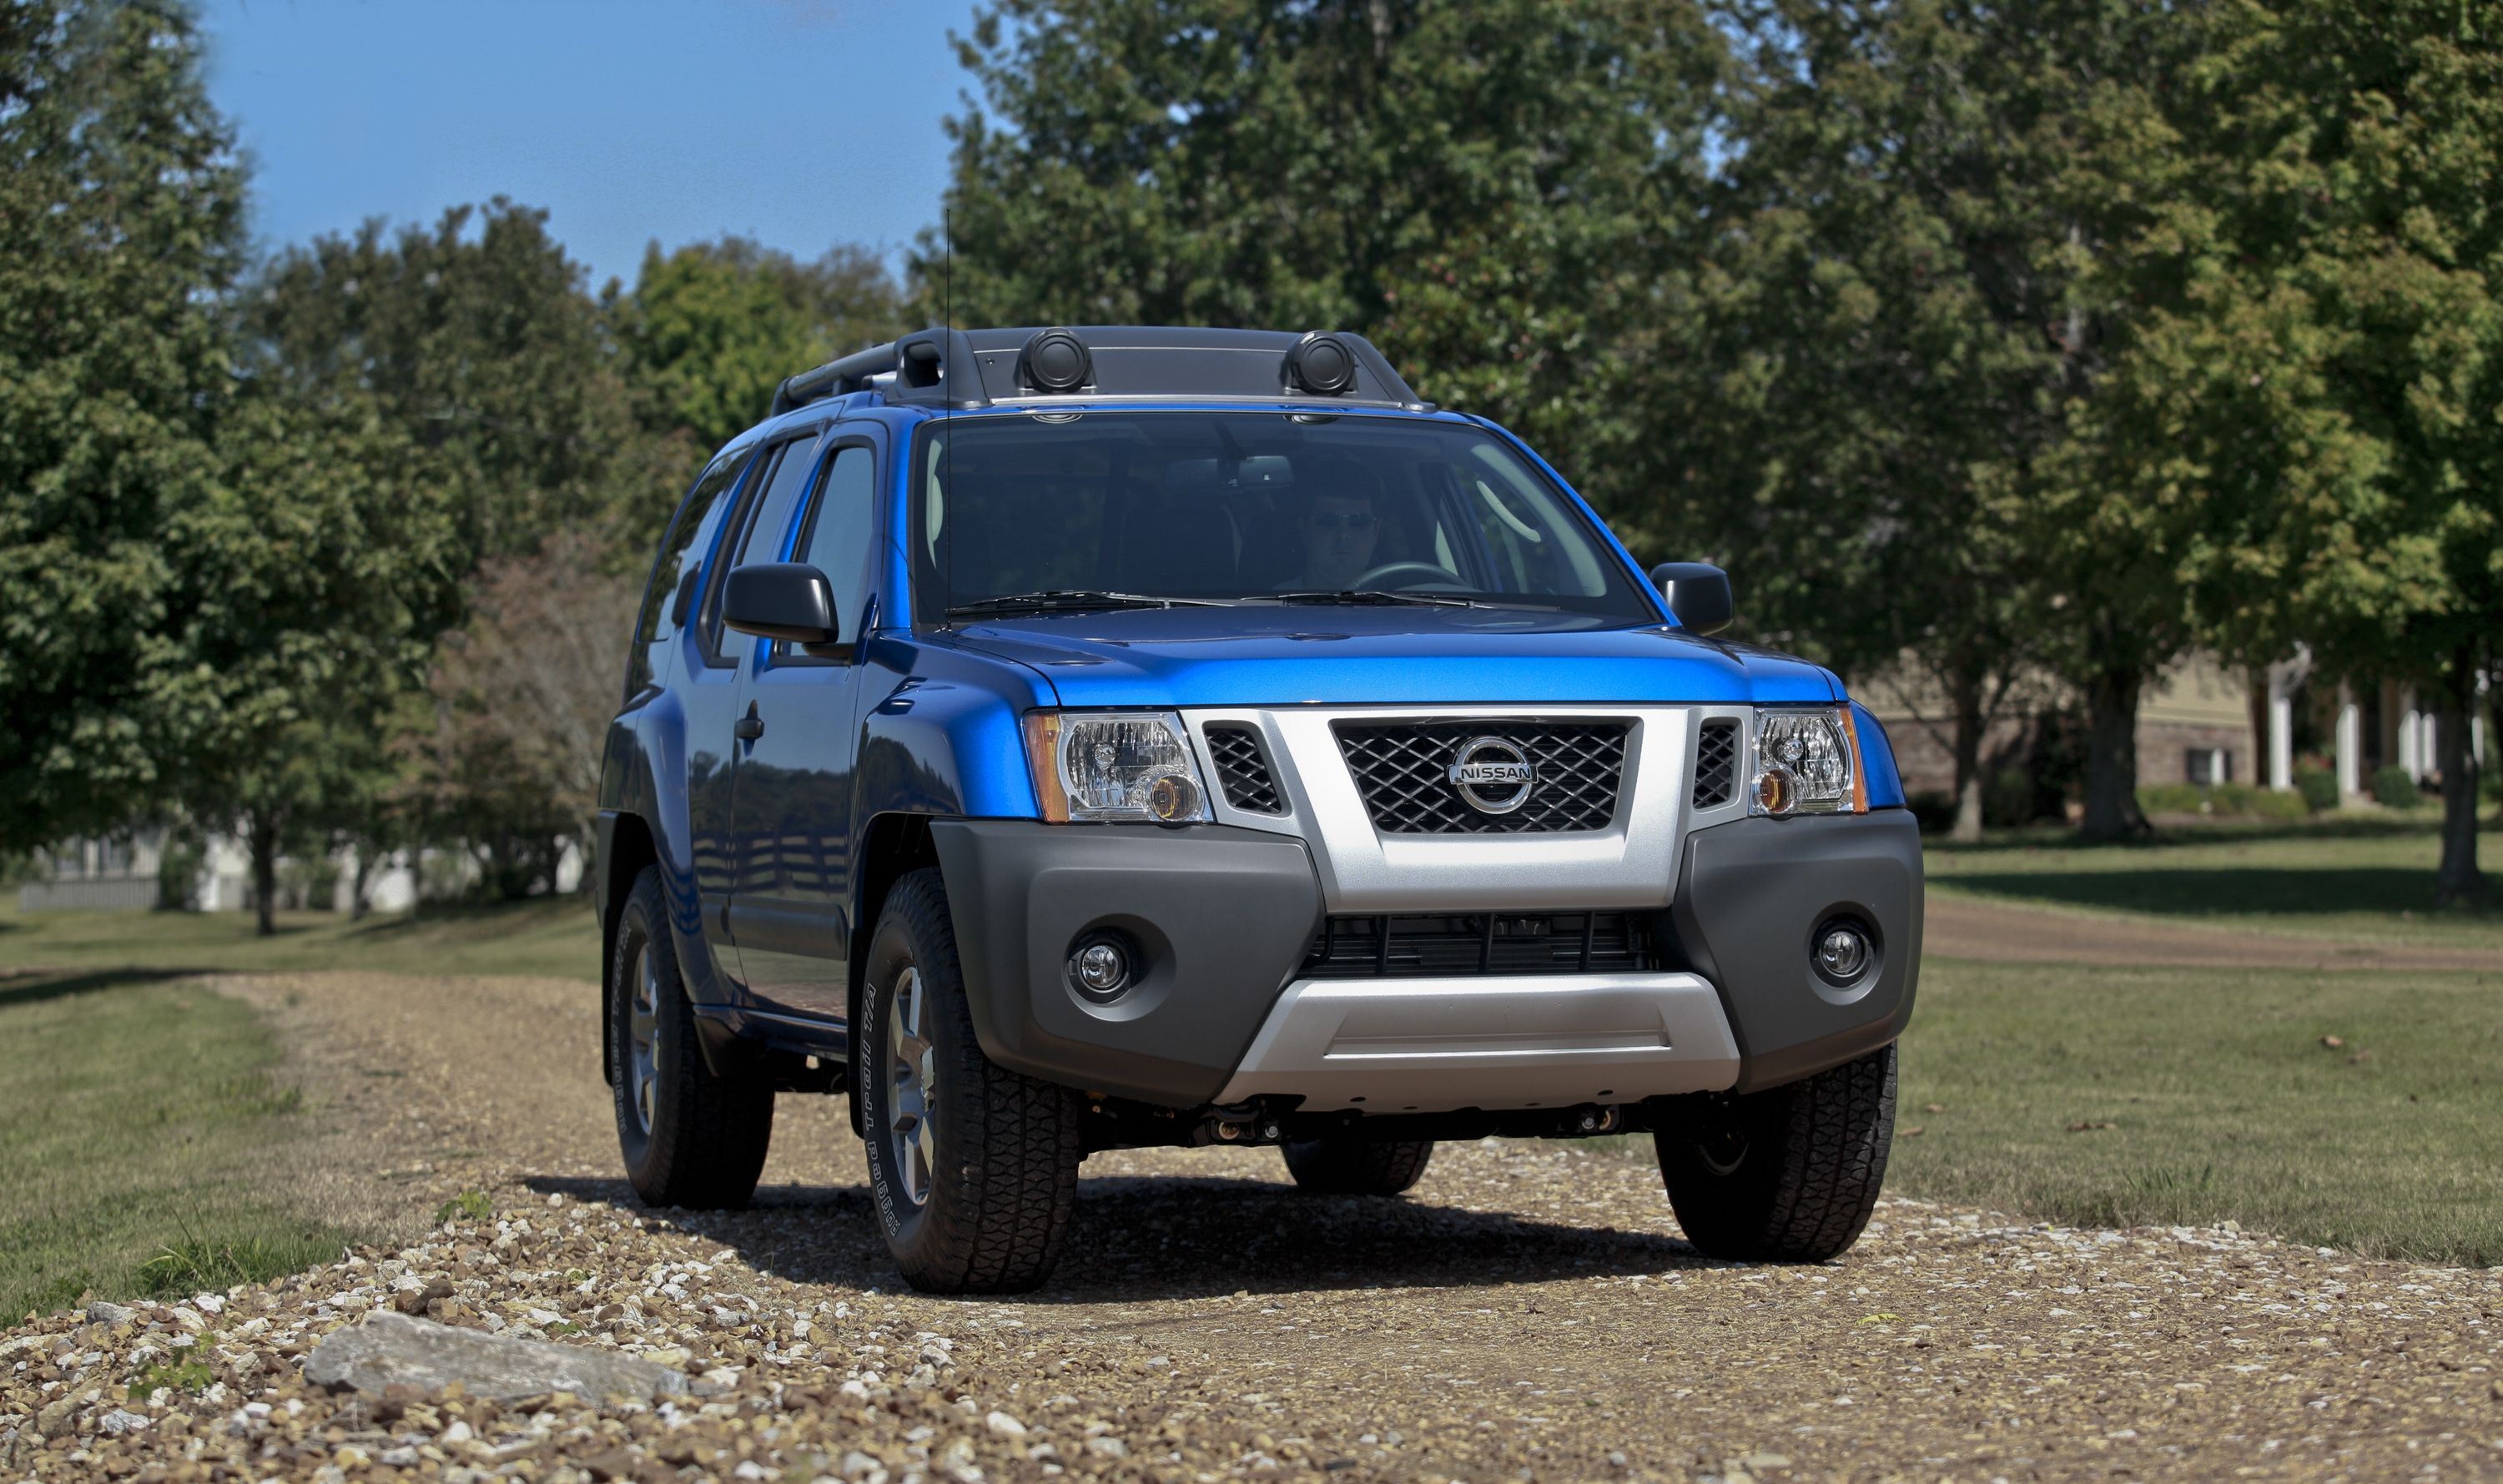 The Adventure Ready 2012 Nissan Xterra Continues To Combine Power Utility Value And Authenticity Inspiring And Faci With Images Nissan Xterra 2015 Nissan Xterra Nissan